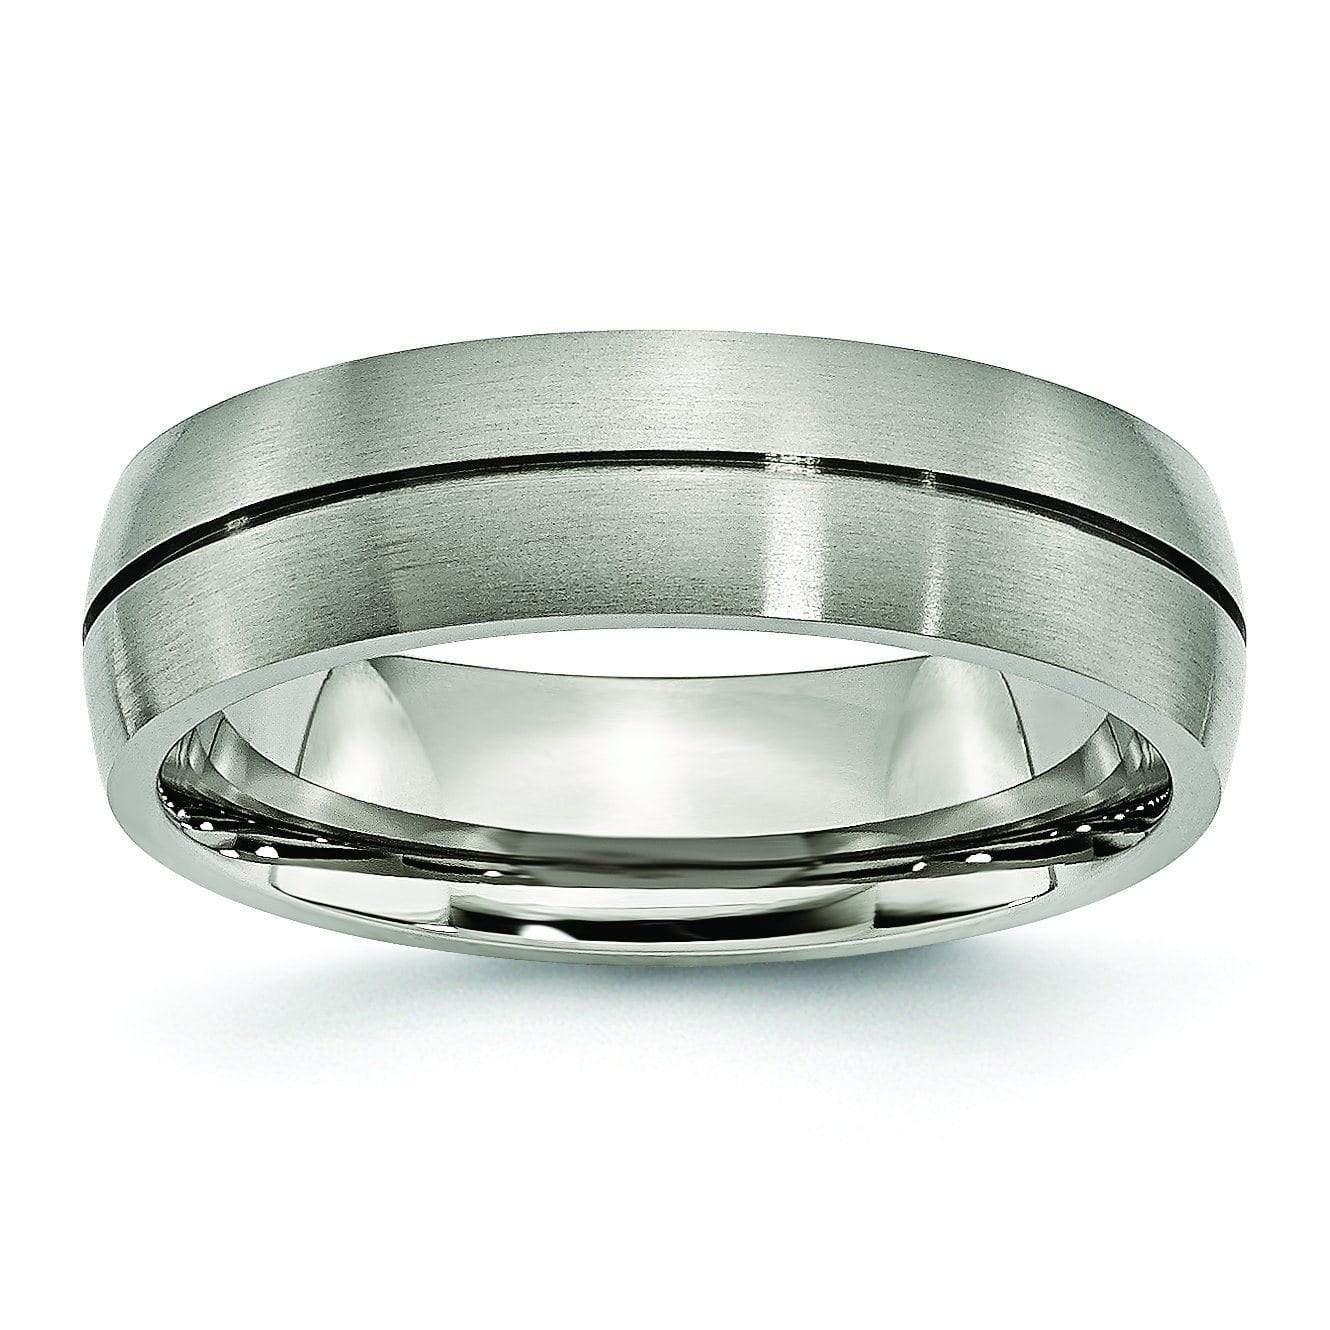 Grooved Titanium Ring Matte Finish in 6mm Aircraft Grade Titanium Titanium Wedding Rings deBebians